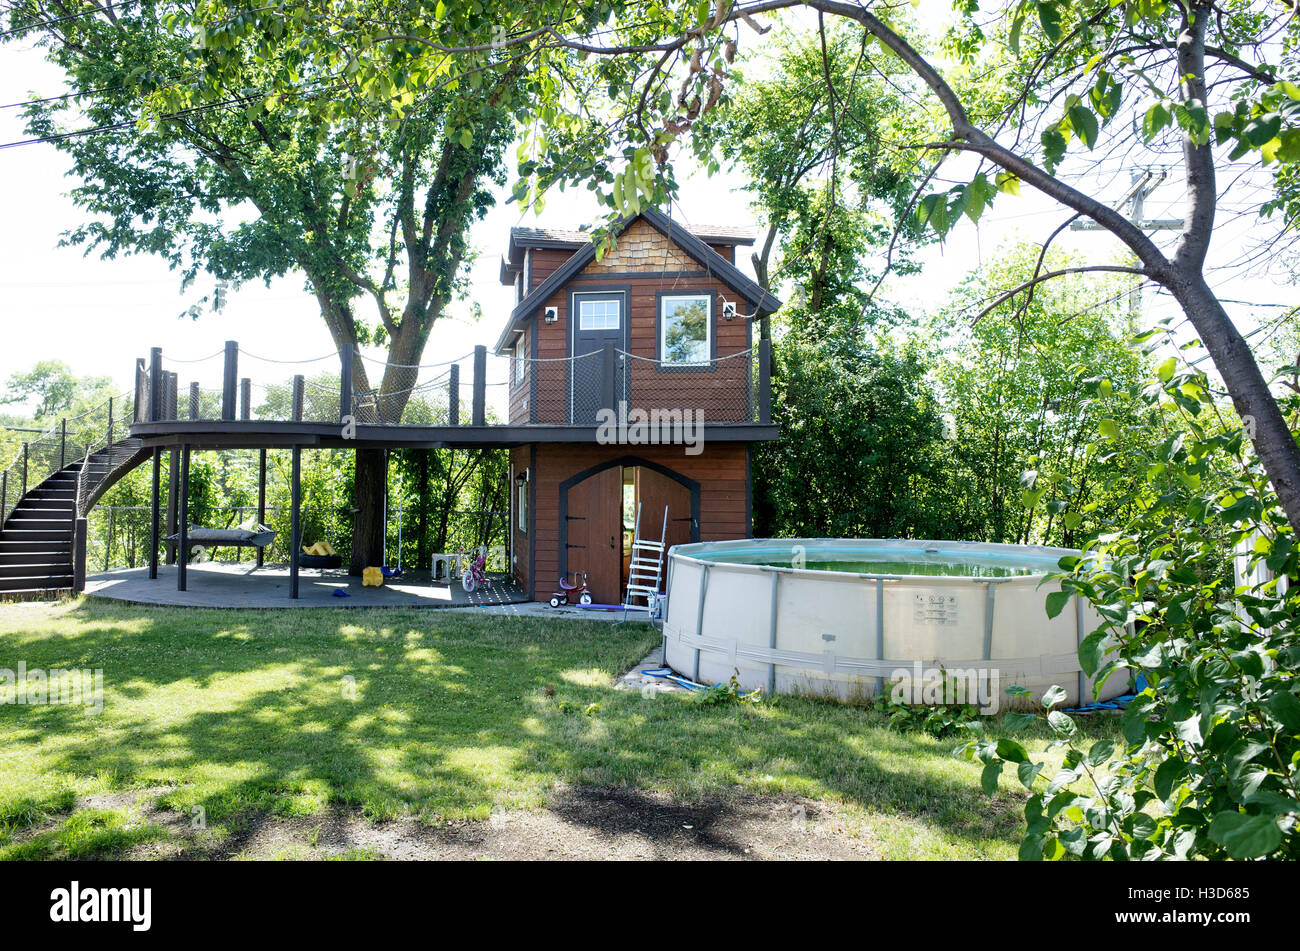 Fanciful two story tree house with a long curved stairway beside a giant hot tub.  Fergus Falls Minnesota MN USA - Stock Image